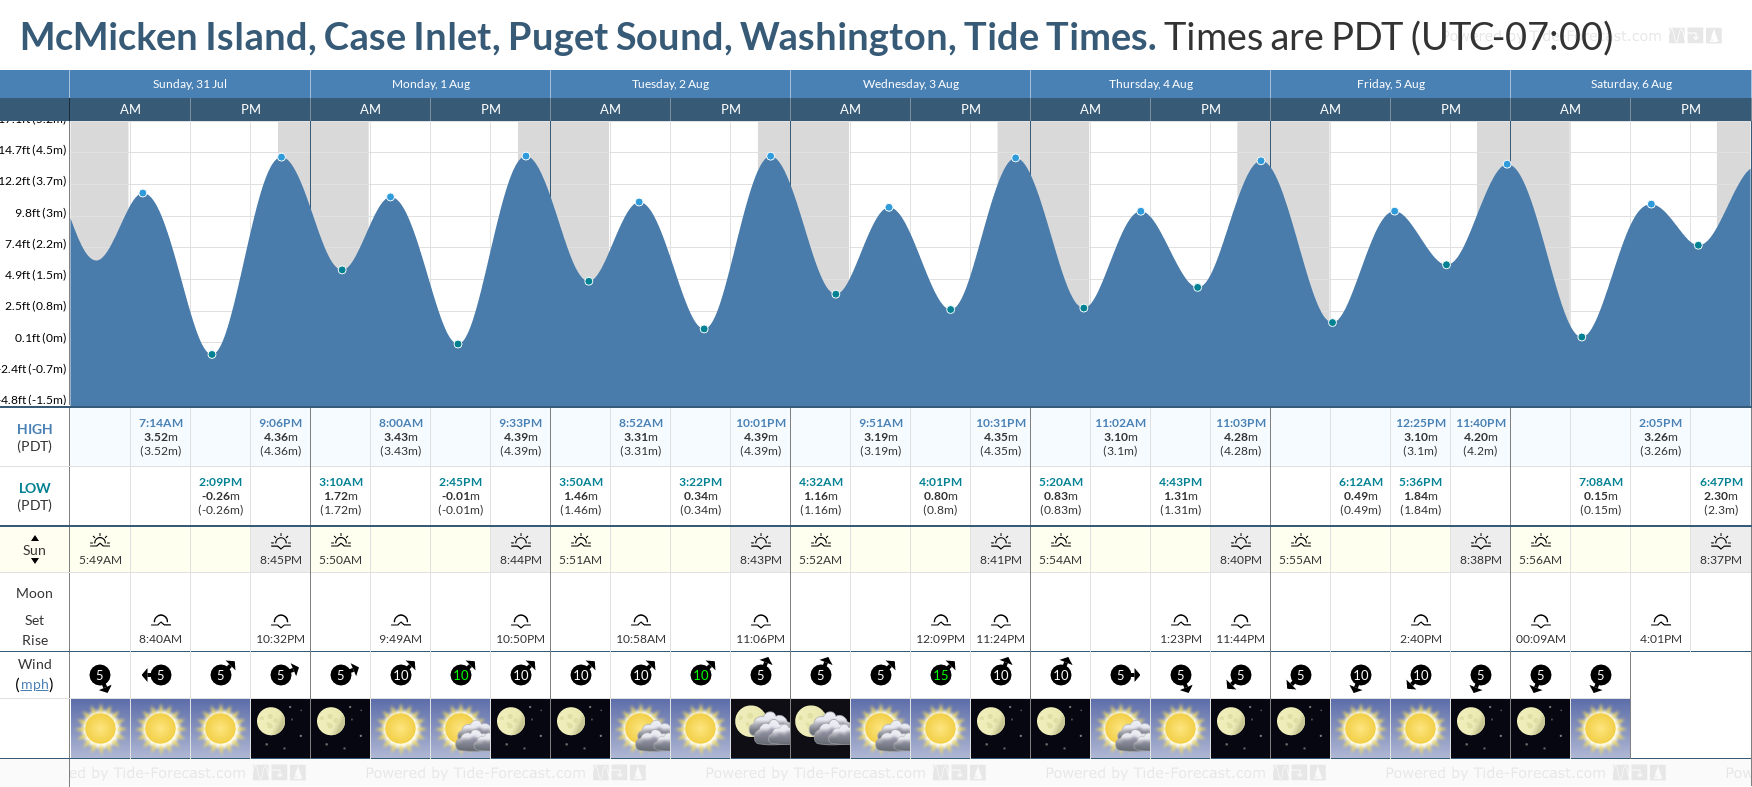 McMicken Island, Case Inlet, Puget Sound, Washington Tide Chart including high and low tide tide times for the next 7 days